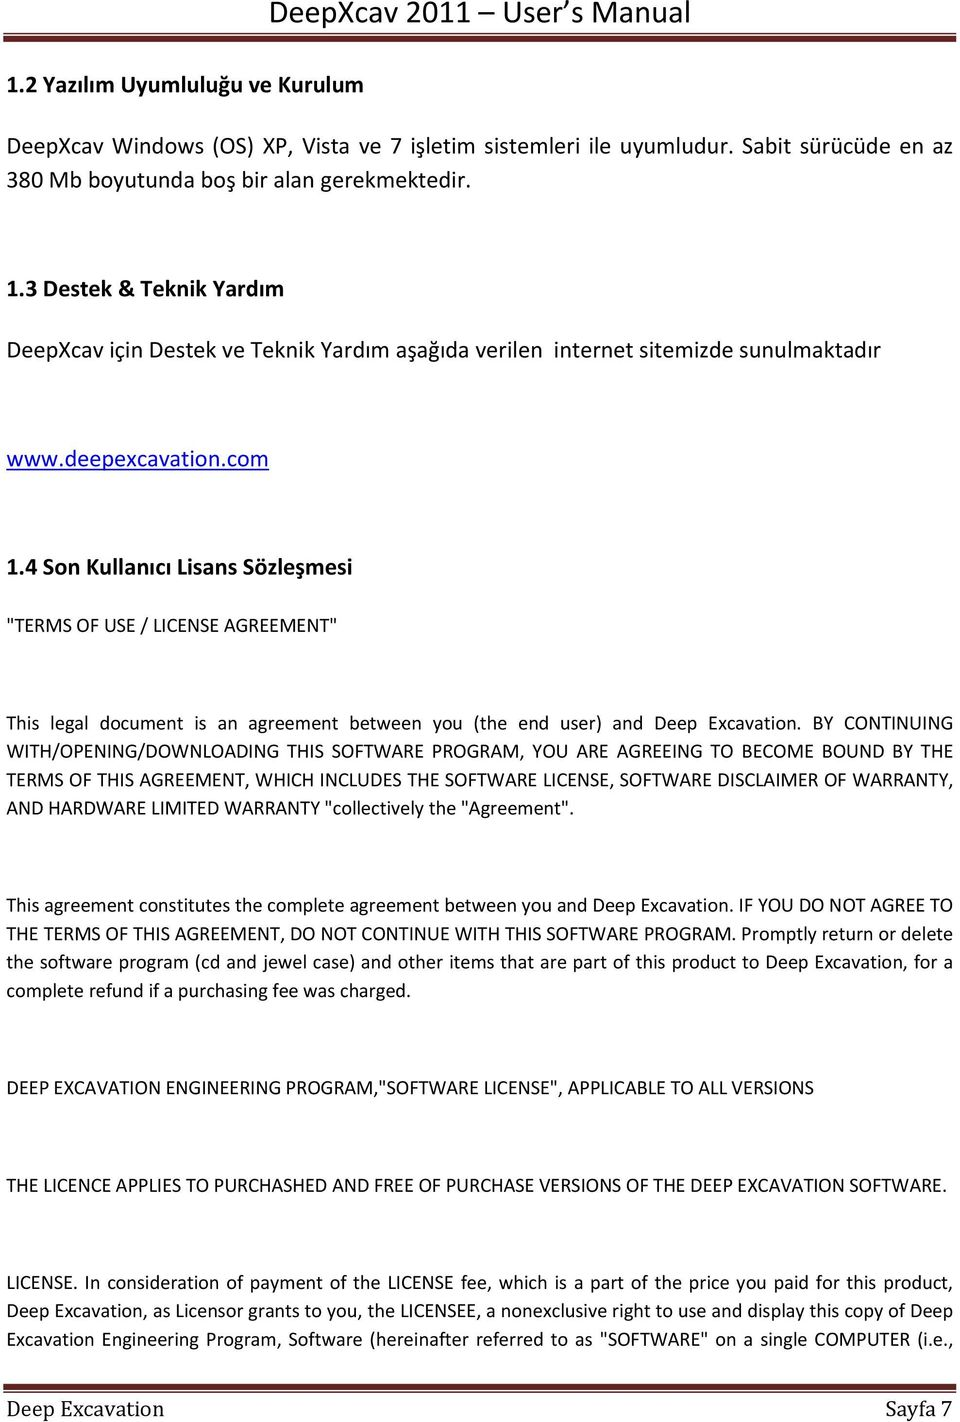 "4 Son Kullanıcı Lisans Sözleşmesi ""TERMS OF USE / LICENSE AGREEMENT"" This legal document is an agreement between you (the end user) and Deep Excavation."